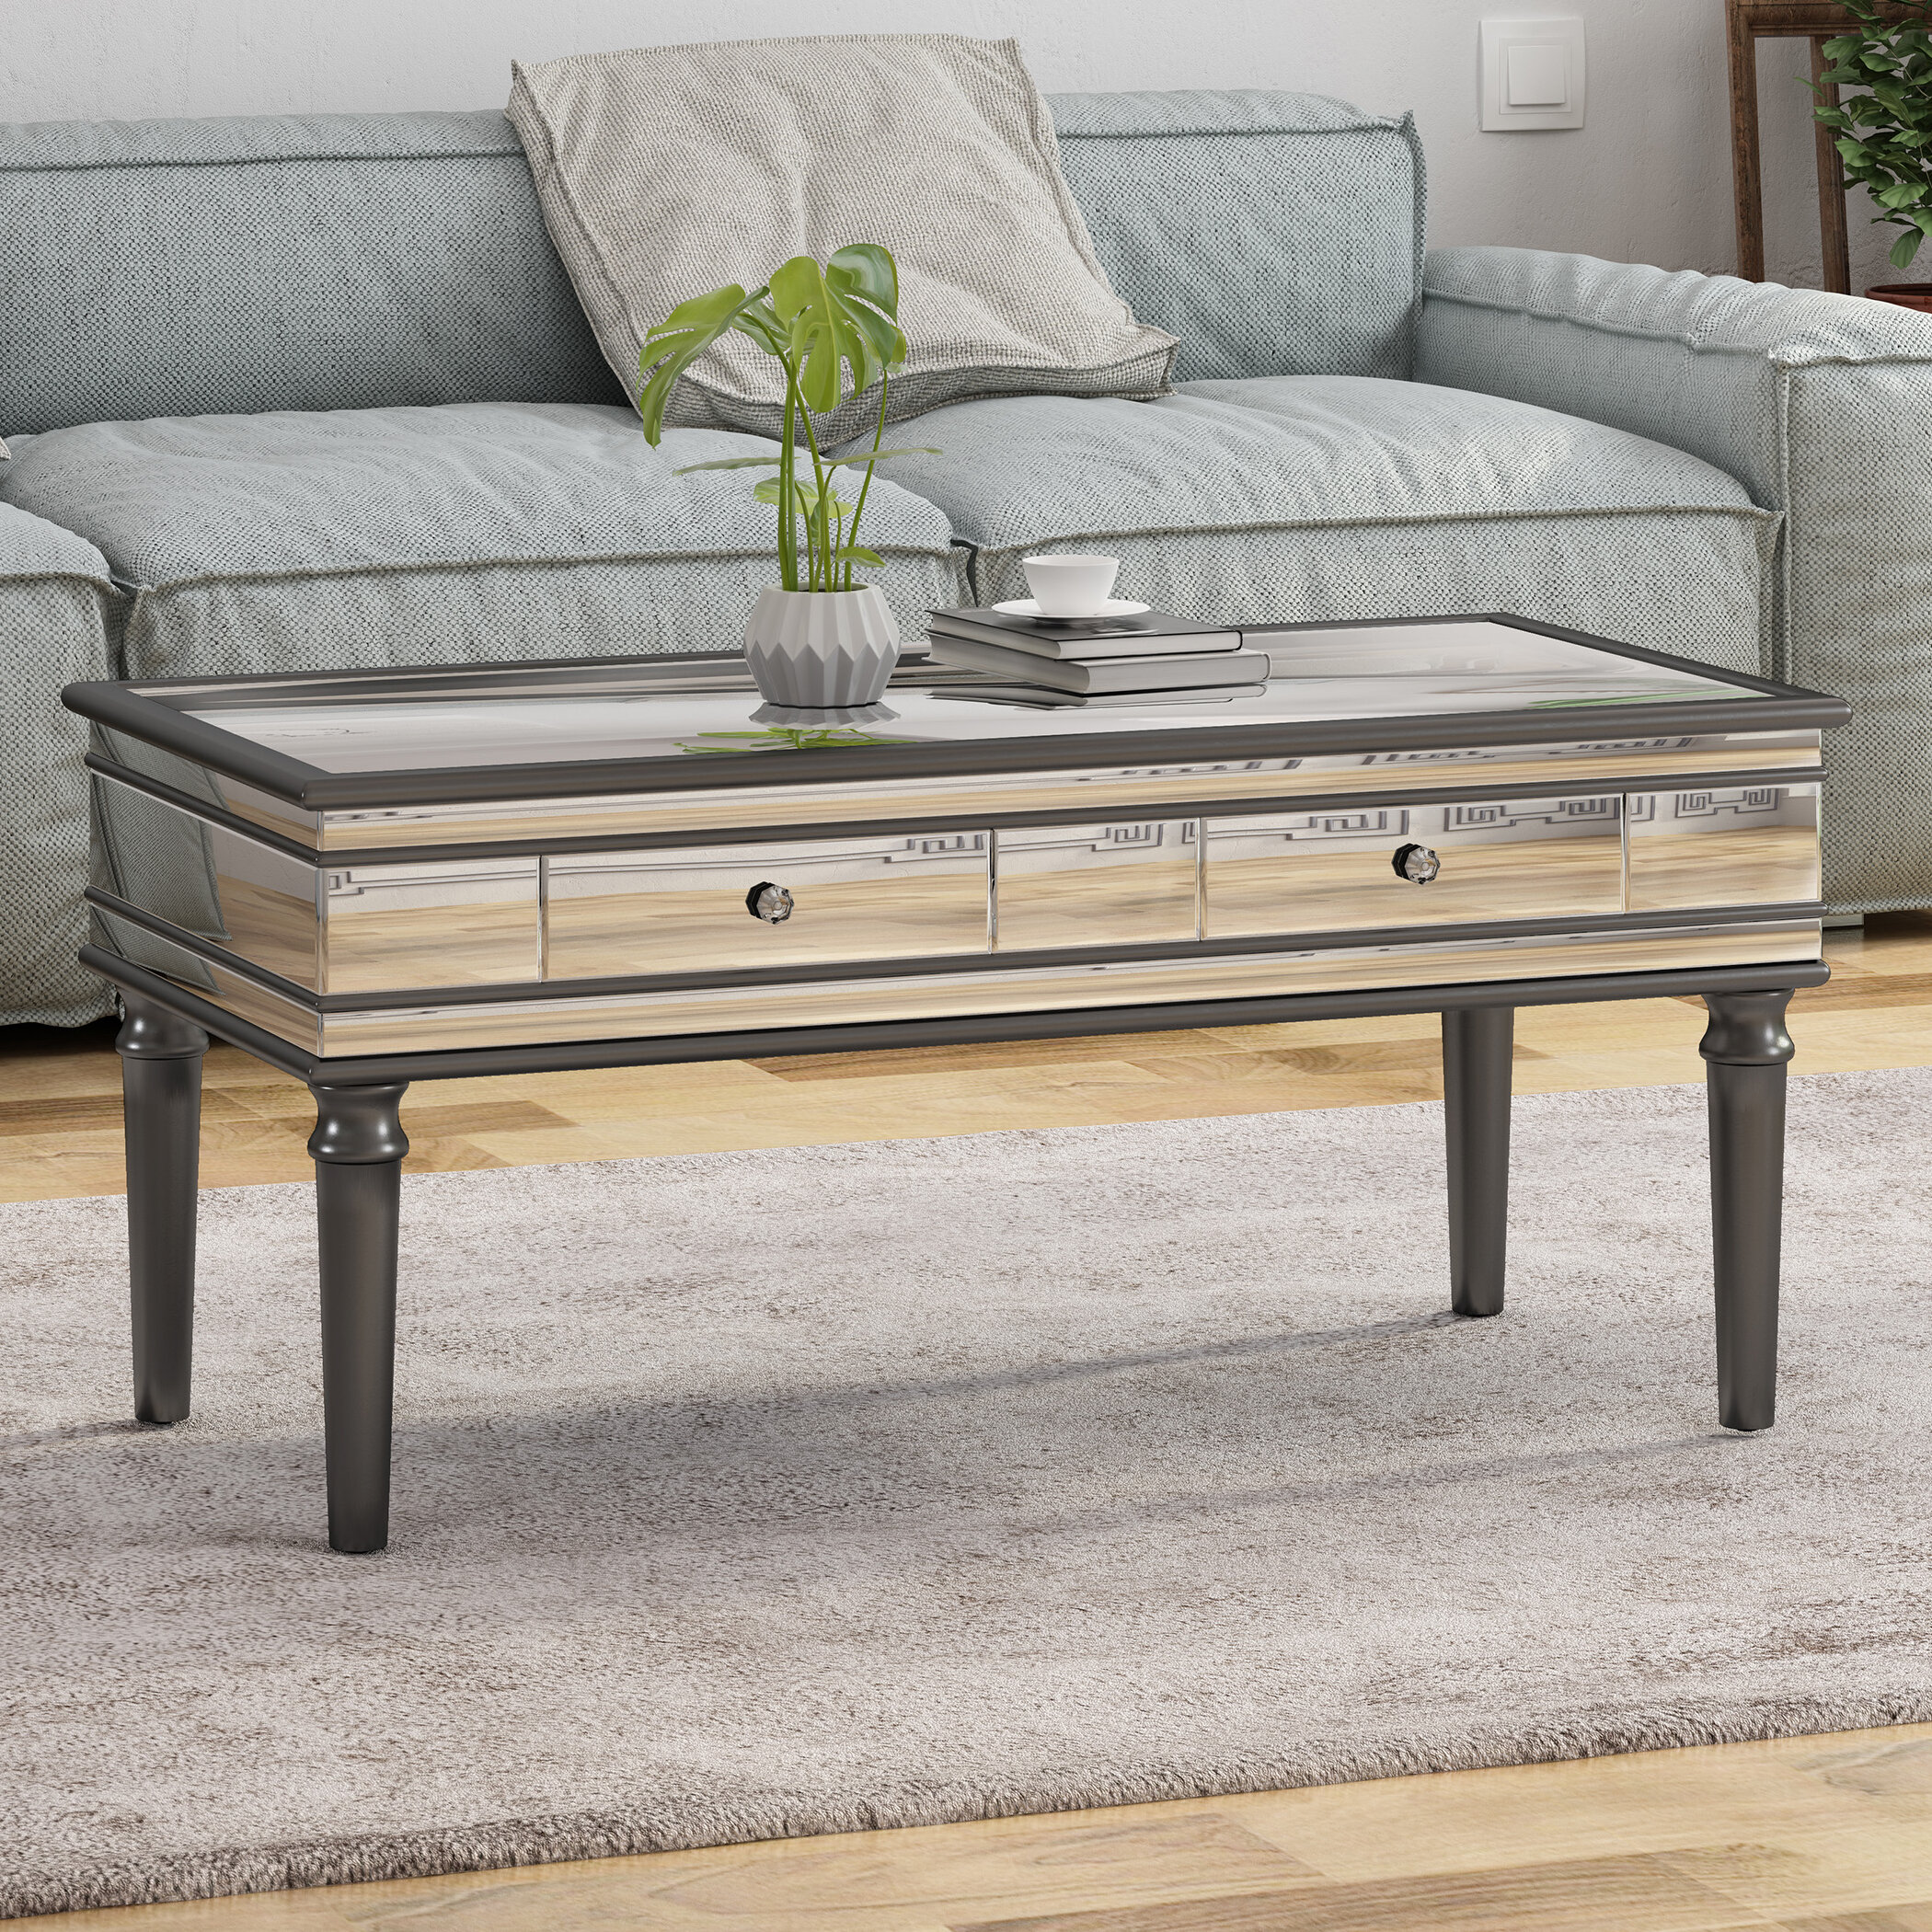 Swell Callender Coffee Table With Storage Machost Co Dining Chair Design Ideas Machostcouk